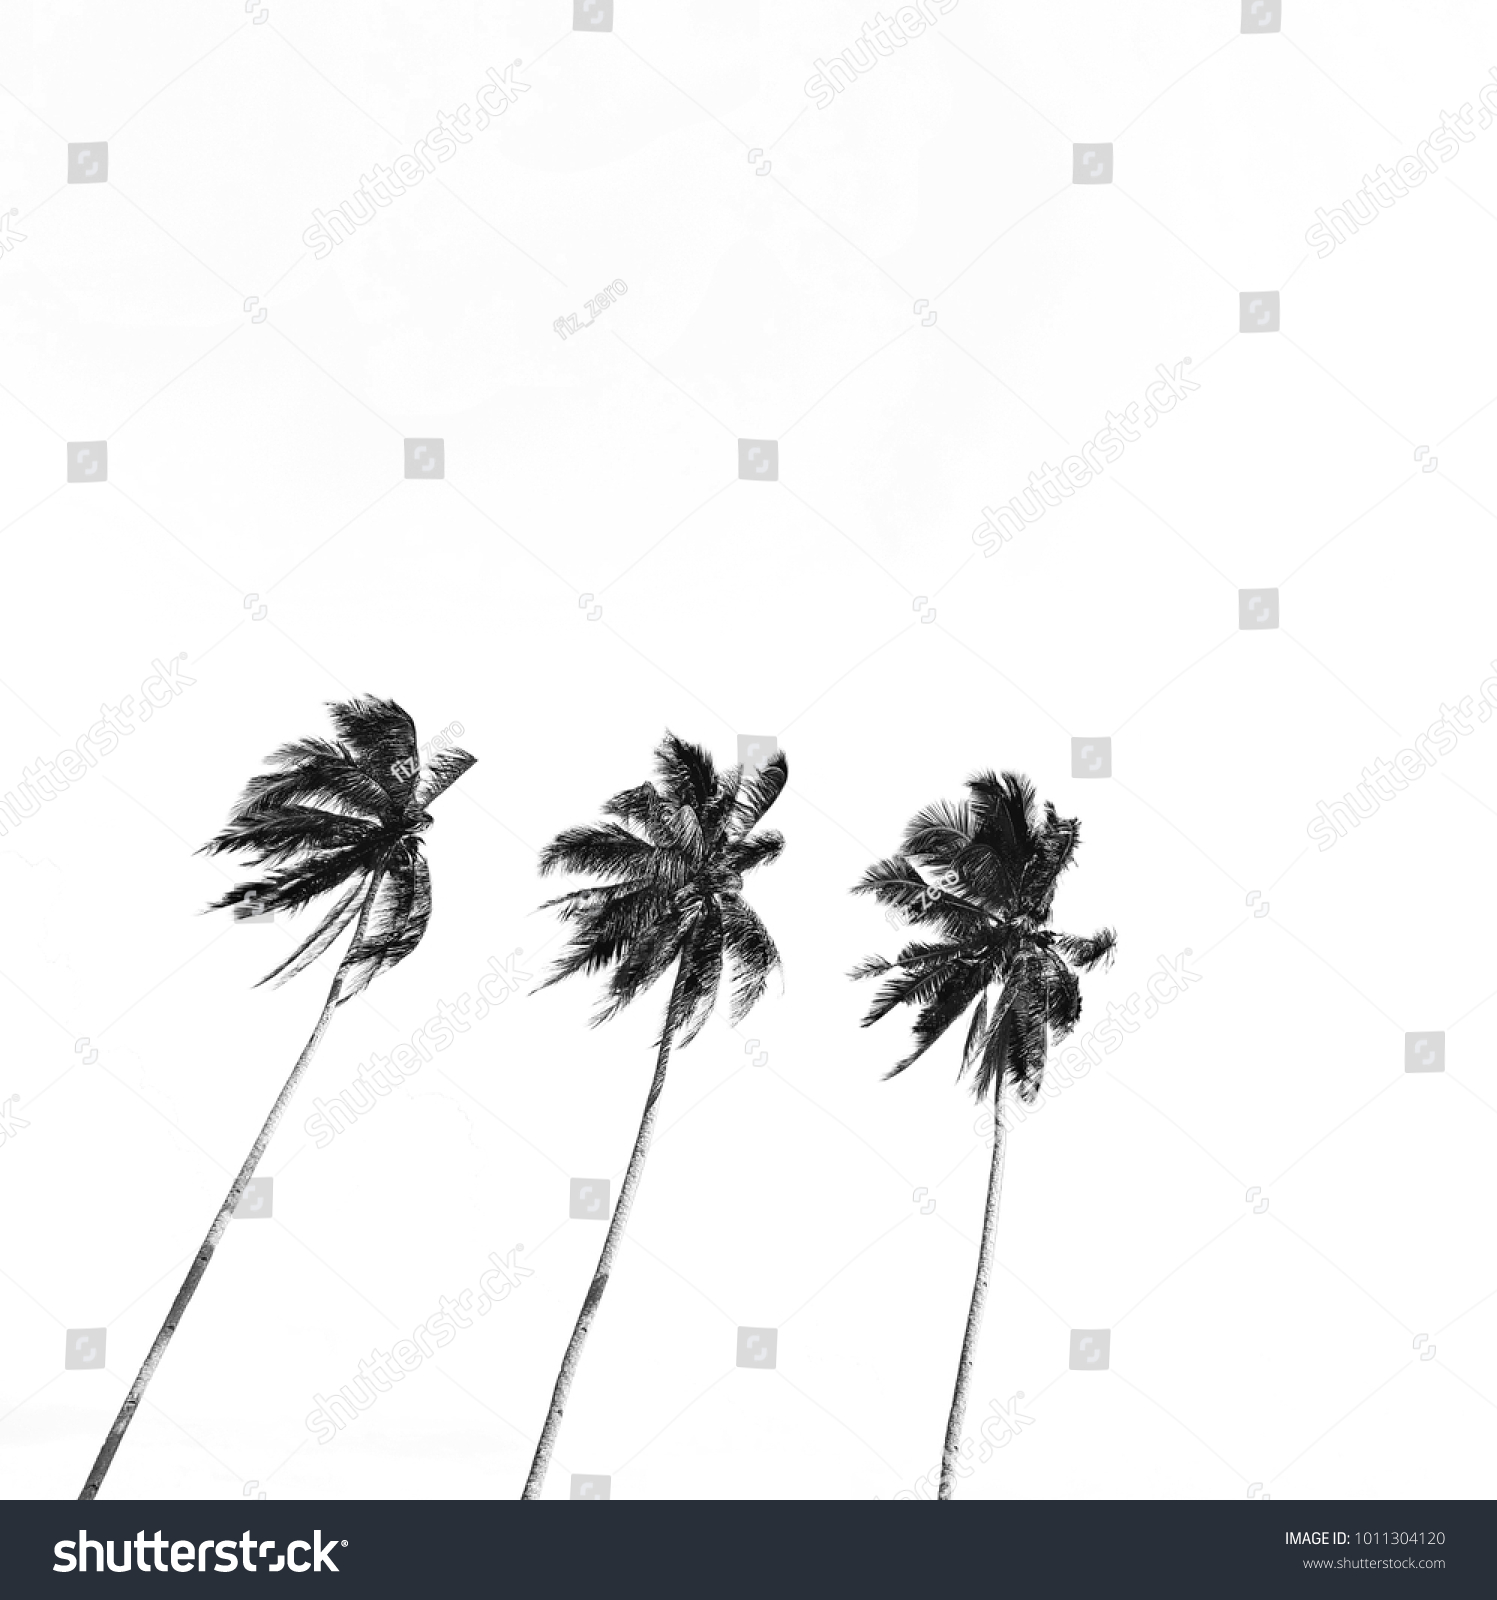 Coconut tree isolated on white background black and white photography